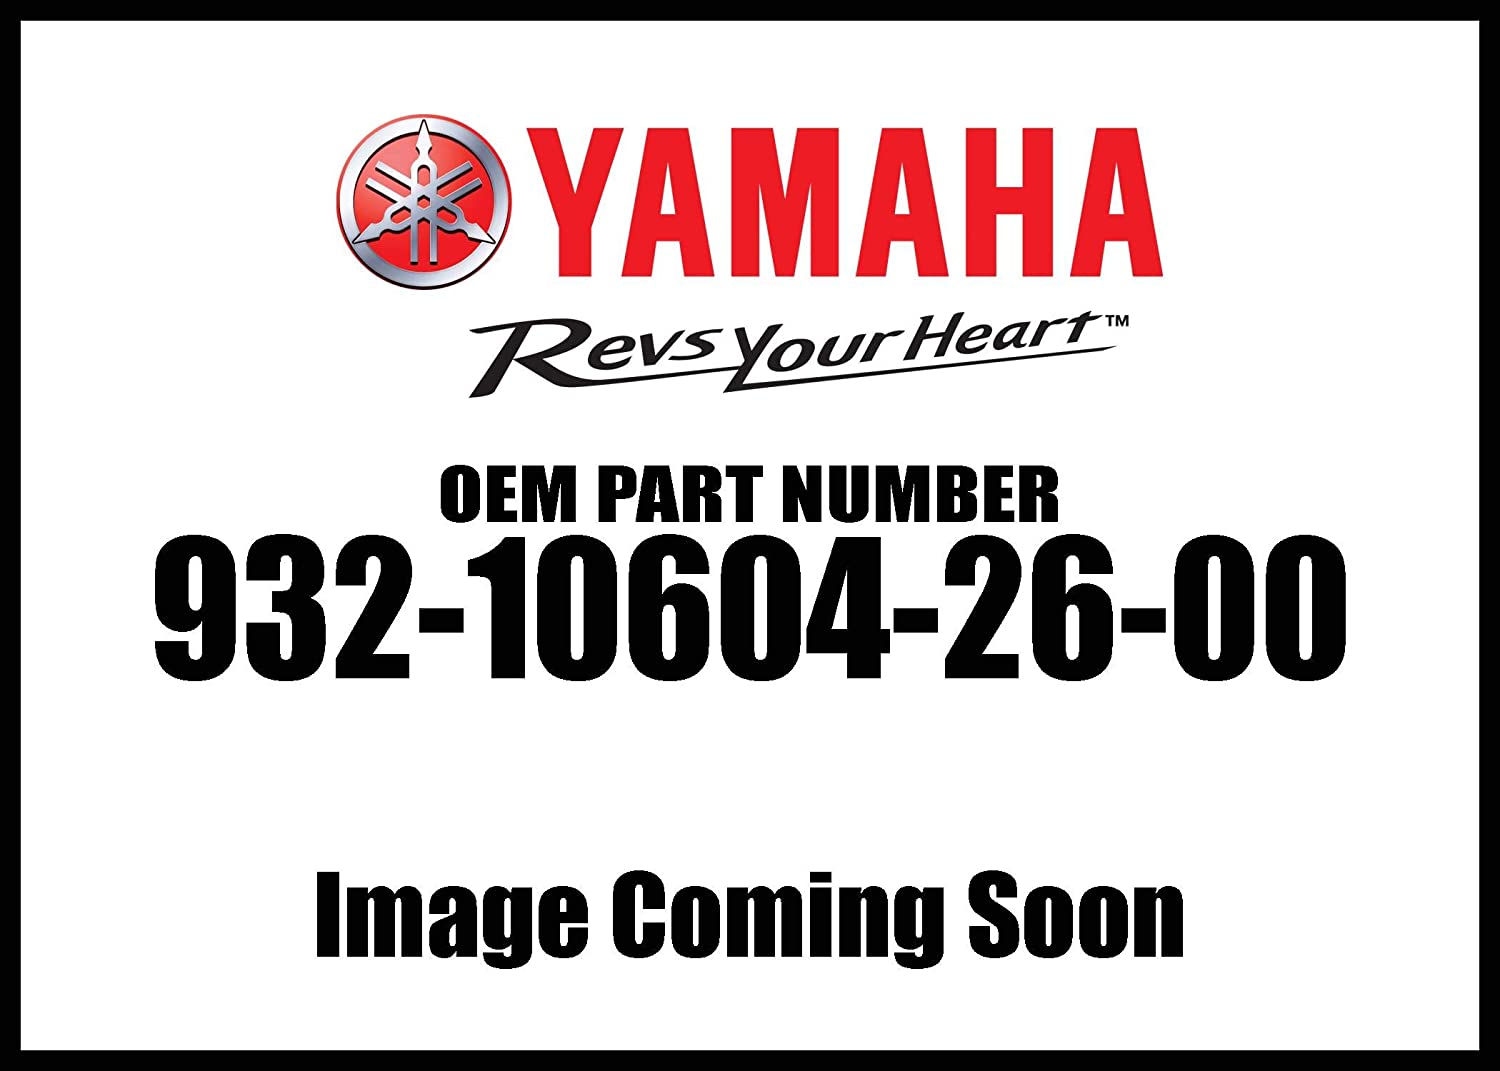 Yamaha 93210-60426-00 O-Ring; 932106042600 Made by Yamaha